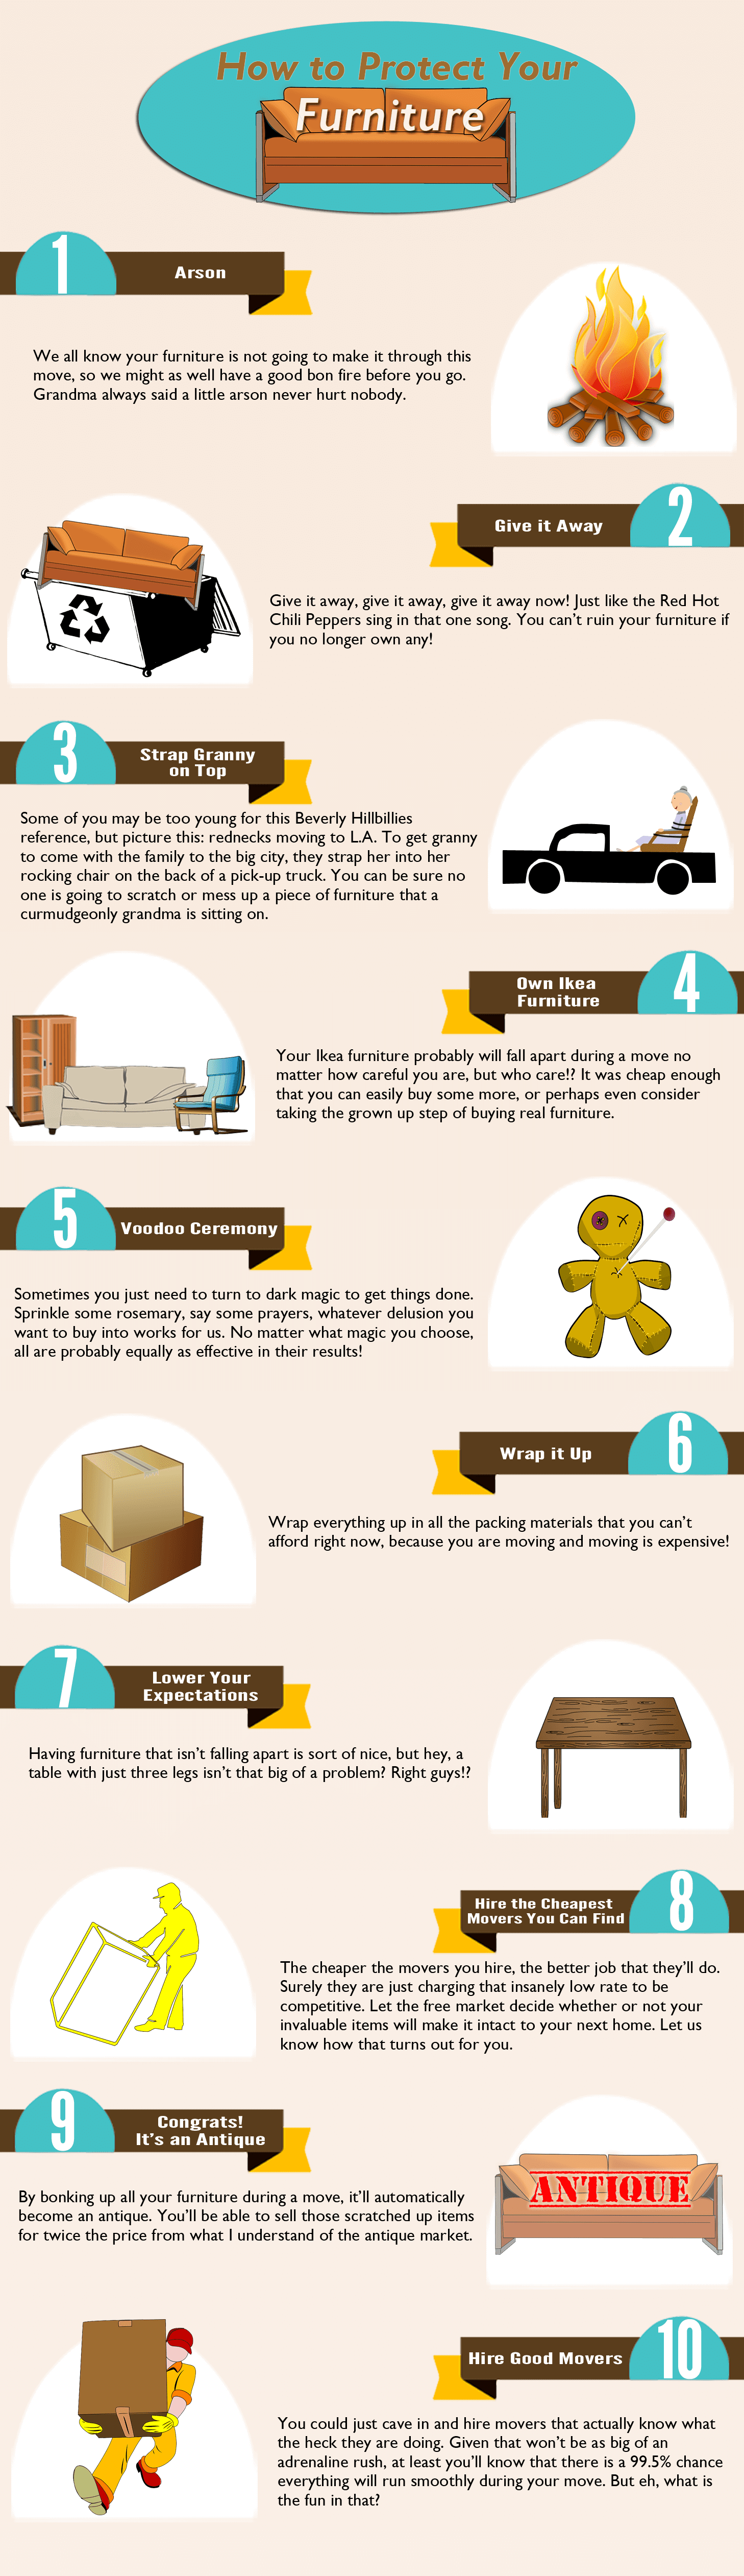 How To Protect Furniture